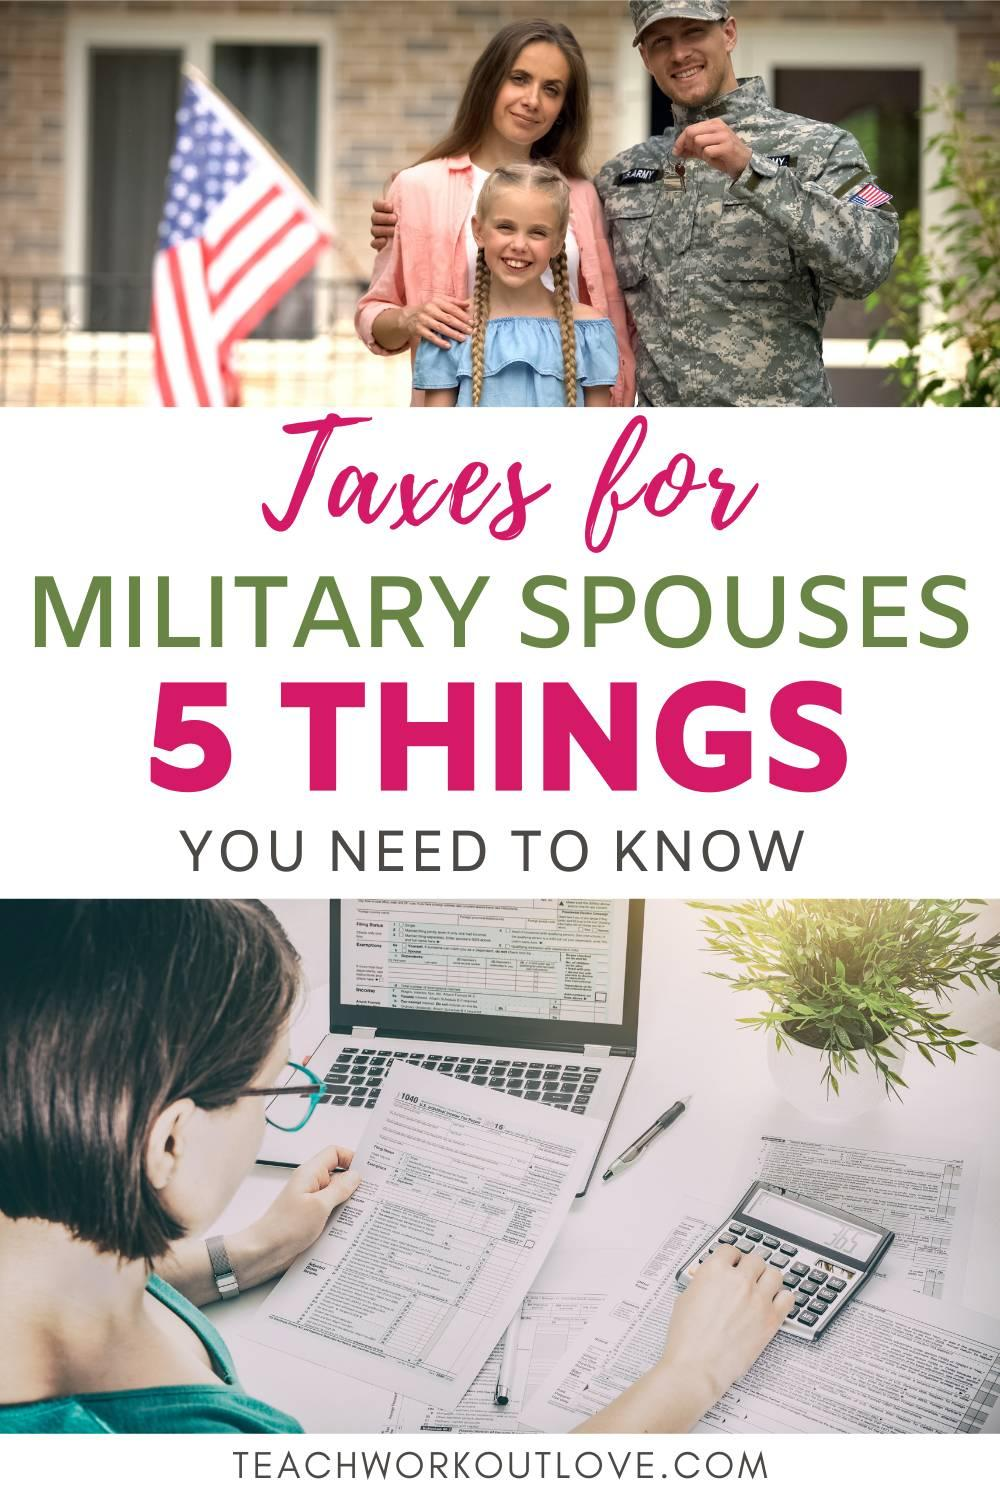 Here we have explained few strategies that may simplify your tax situation and help to reduce taxes for military spouses.